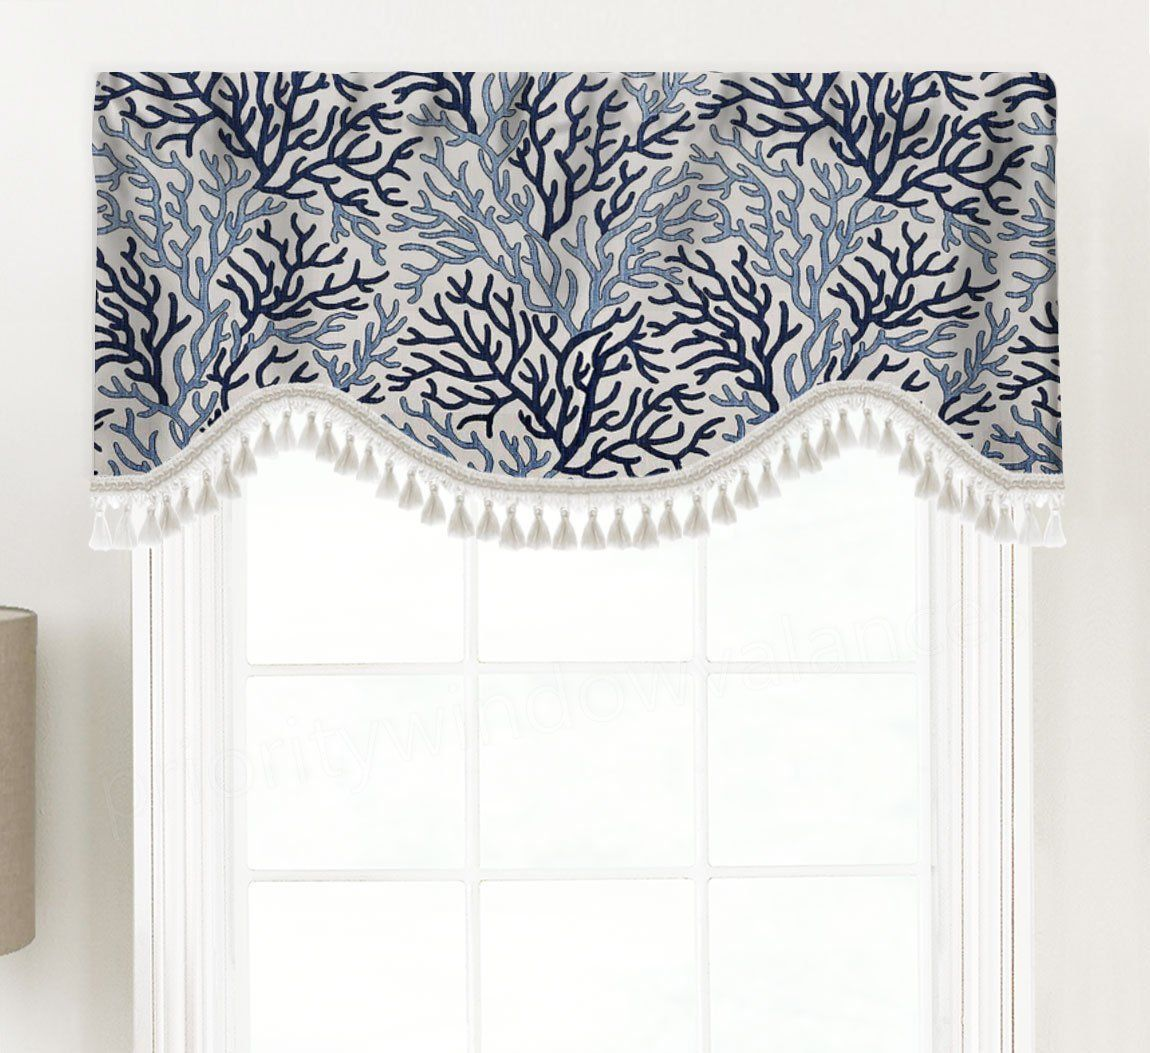 Shaped Rod Pocket Custom Valance Fits Window 33 42 Inches Only